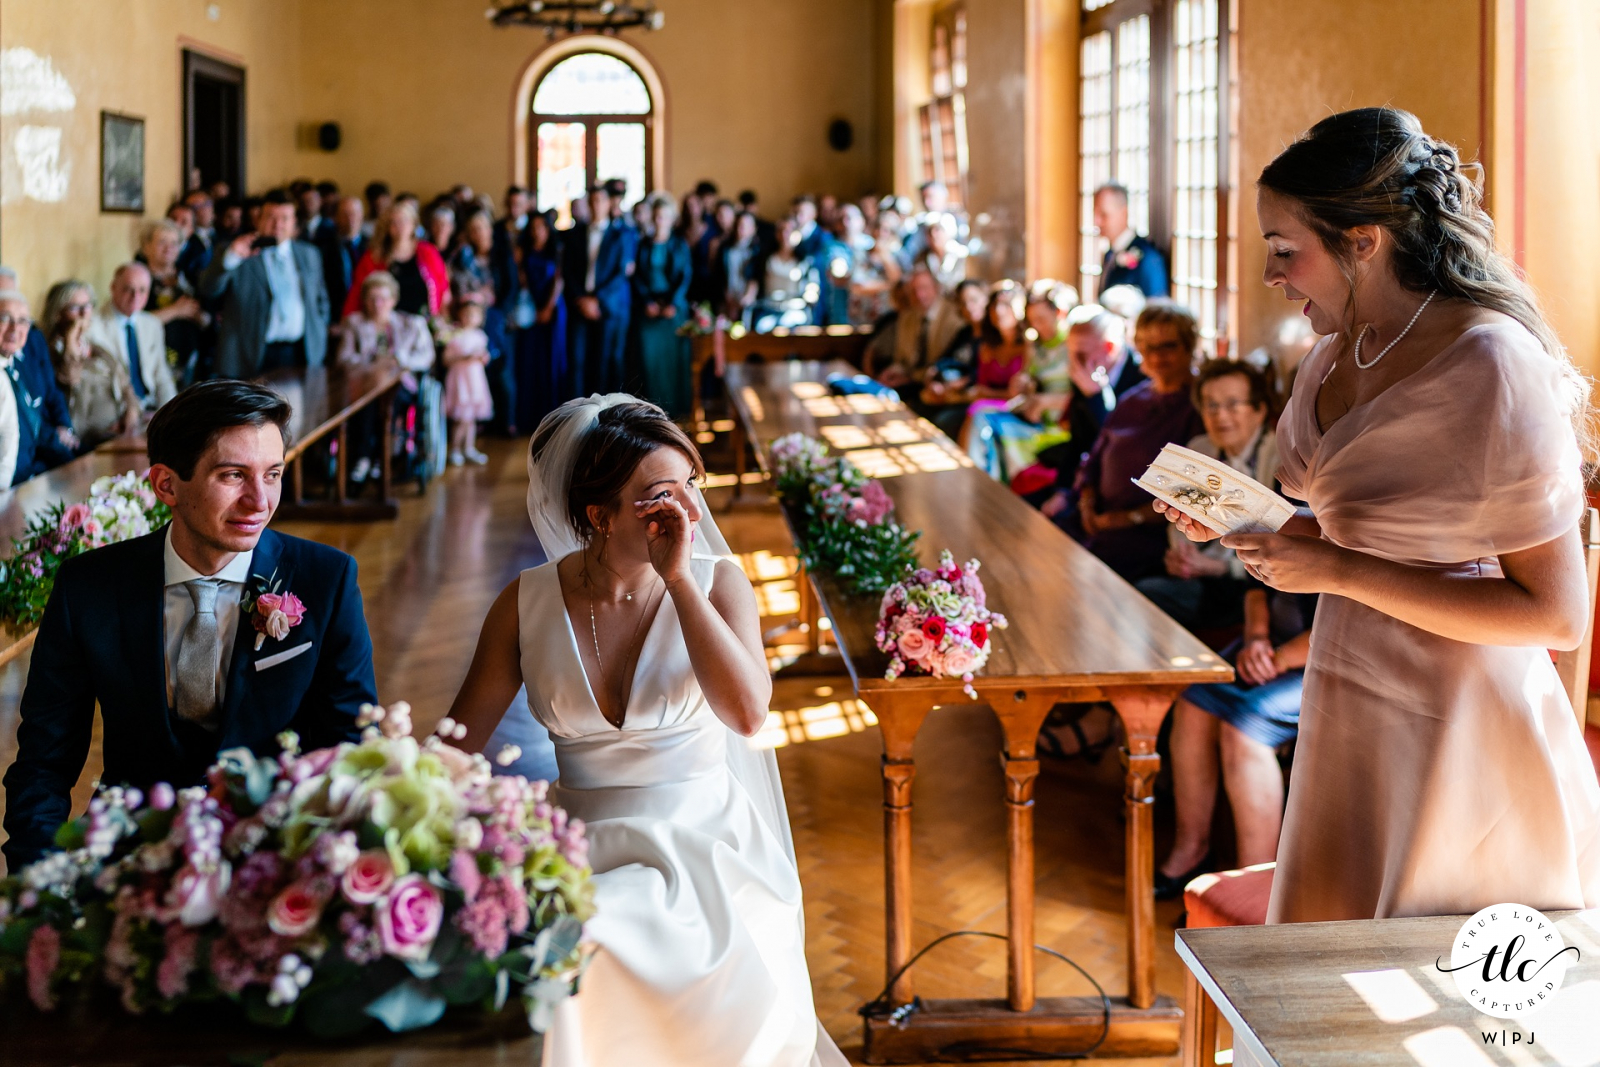 Muggia, Trieste, Italy wedding image from Emotional speeches during the ceremony